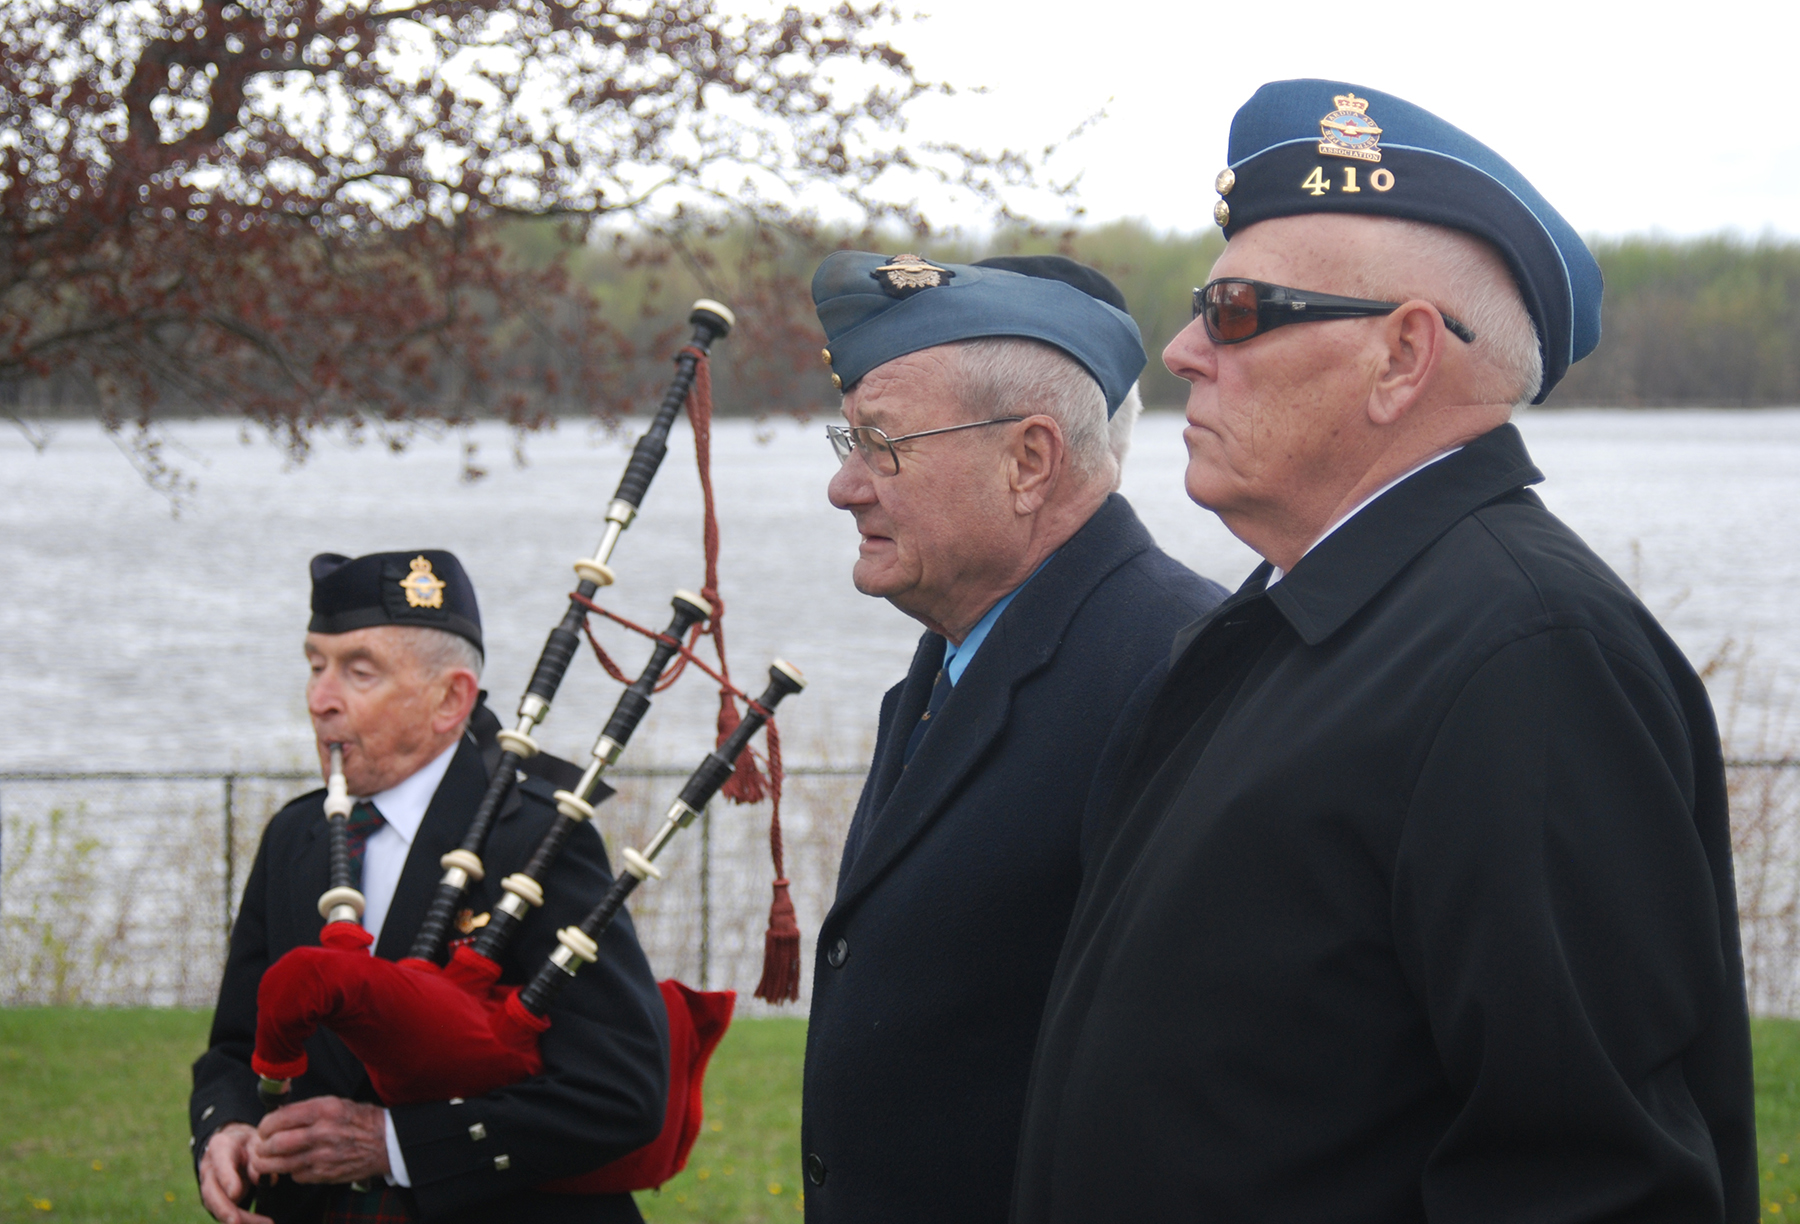 Veterans from the Royal Canadian Legion and 410 Wing Royal Canadian Air Force Association take a moment to reflect during the Piper's Lament at the 60th anniversary ceremony of a CF-100 crash in Orléans, Ontario on May 15, 2016.